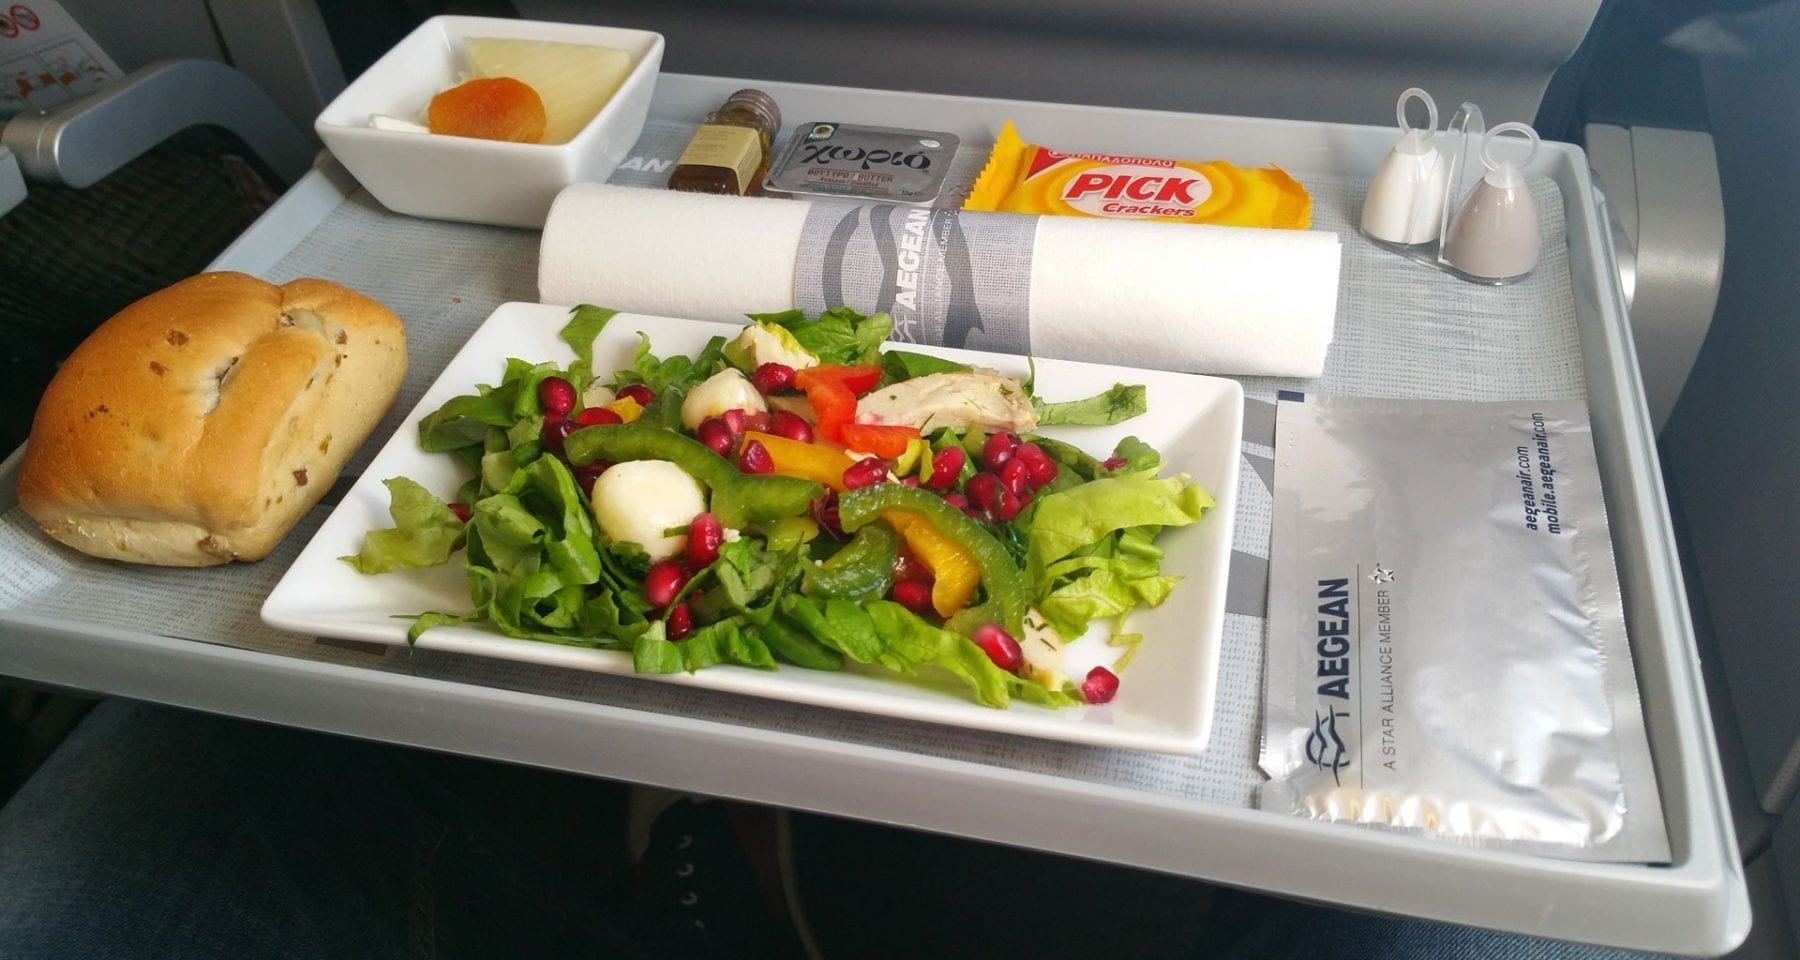 Aegean airlines business class fresh salad